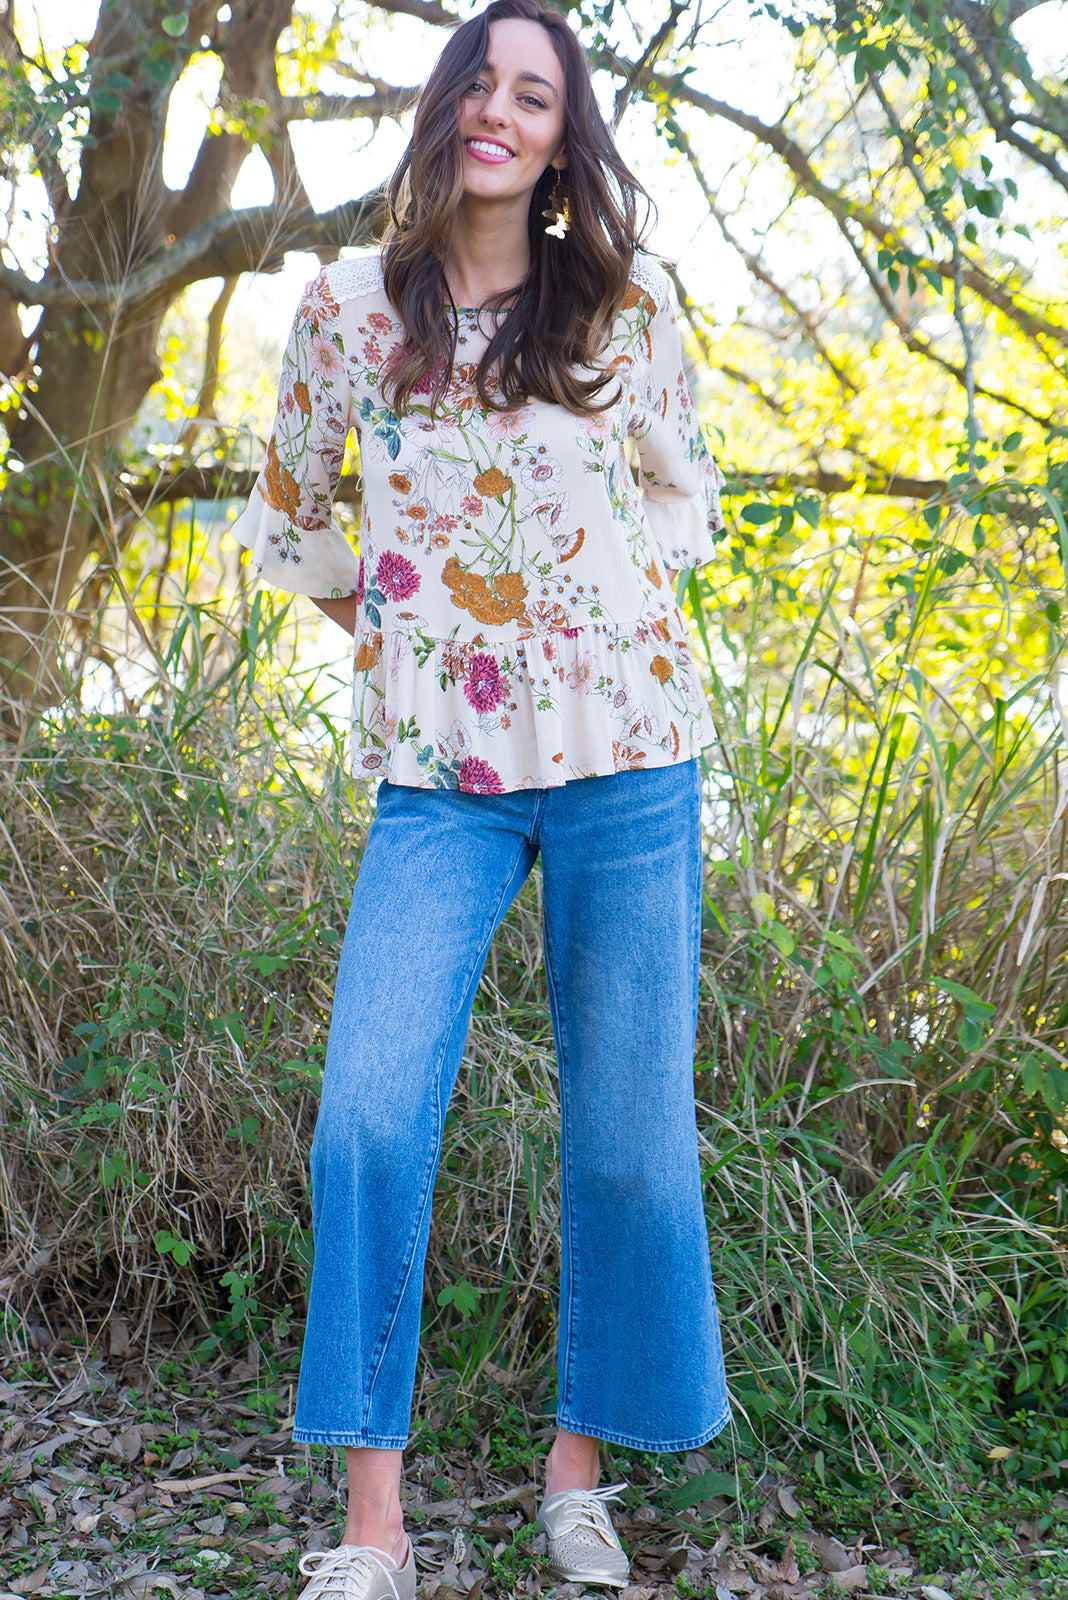 Siena Buttercup Top frill top has a soft drop waist and a bias cut frill sleeve cuff it comes in a crinkle textured rayon with a soft peach botanical print